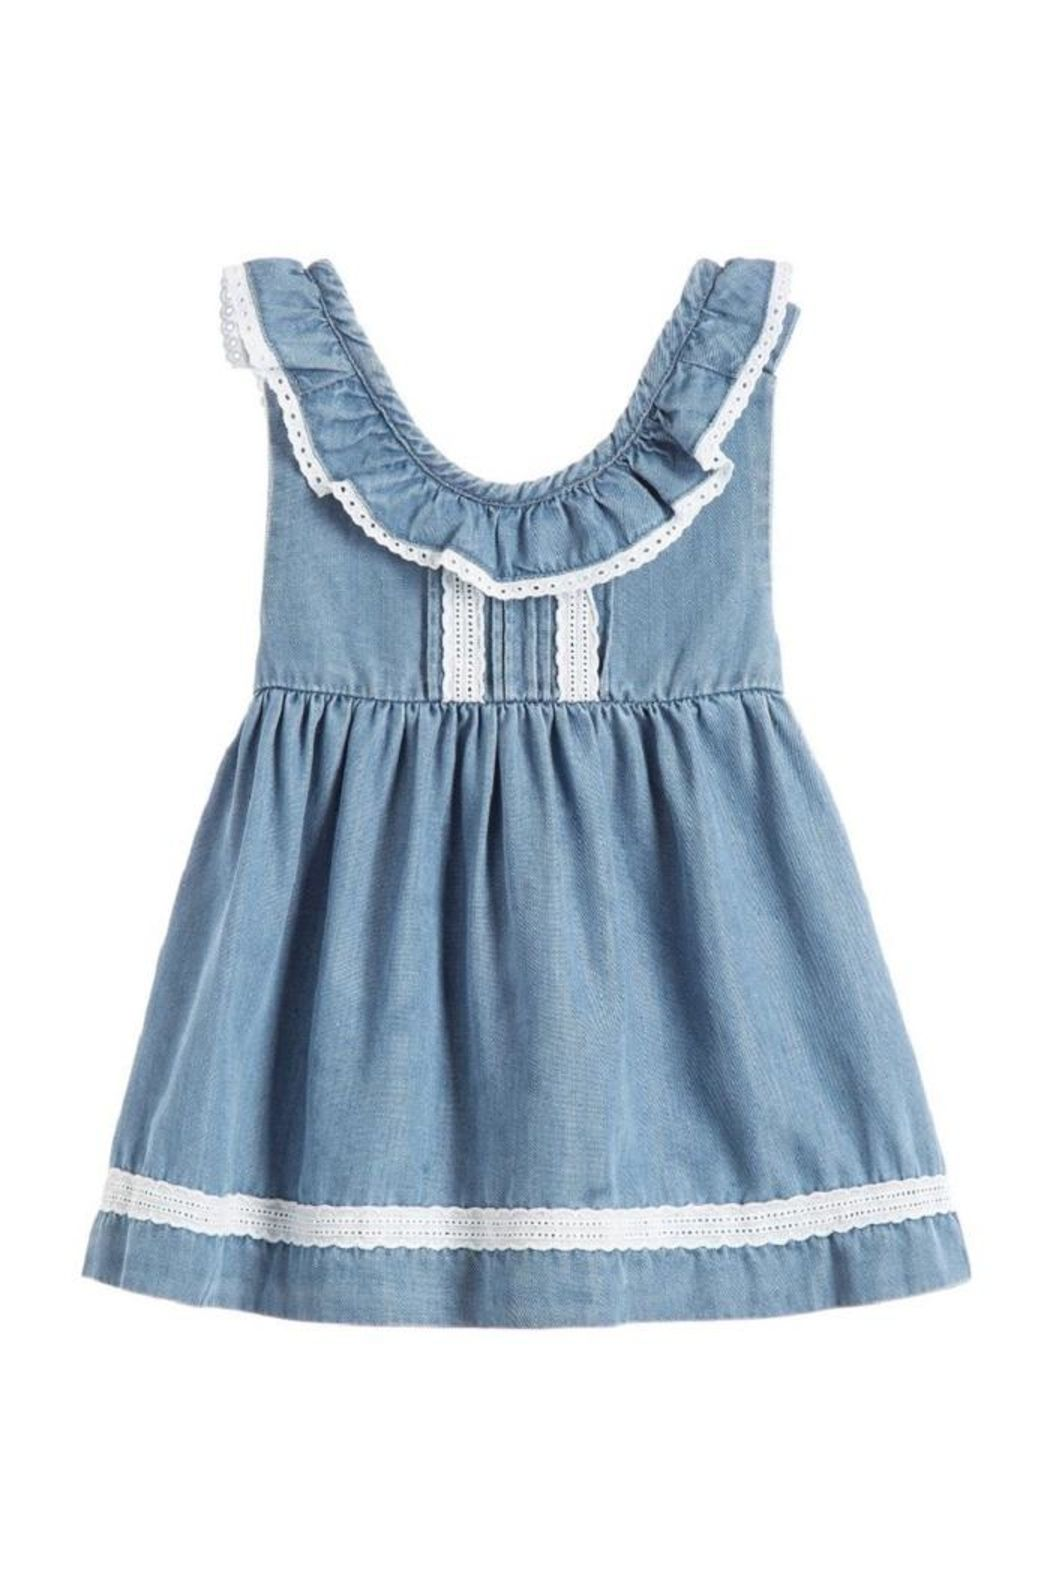 679b5cef24ba Mayoral Dainty Denim Dress - Main Image